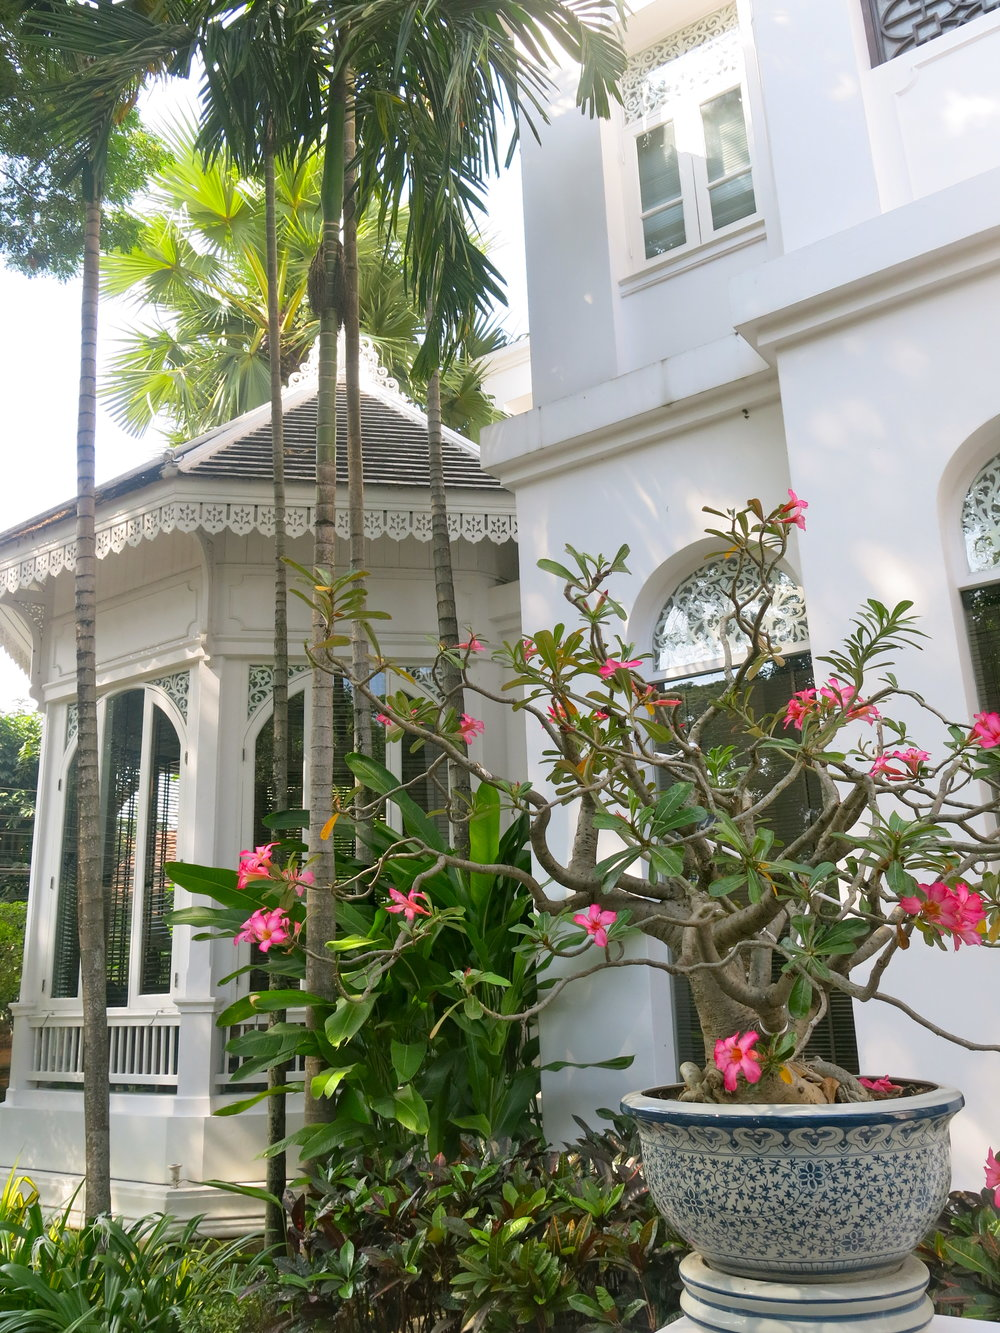 Entrance of the colonial-style Ping Nakara Boutique Hotel